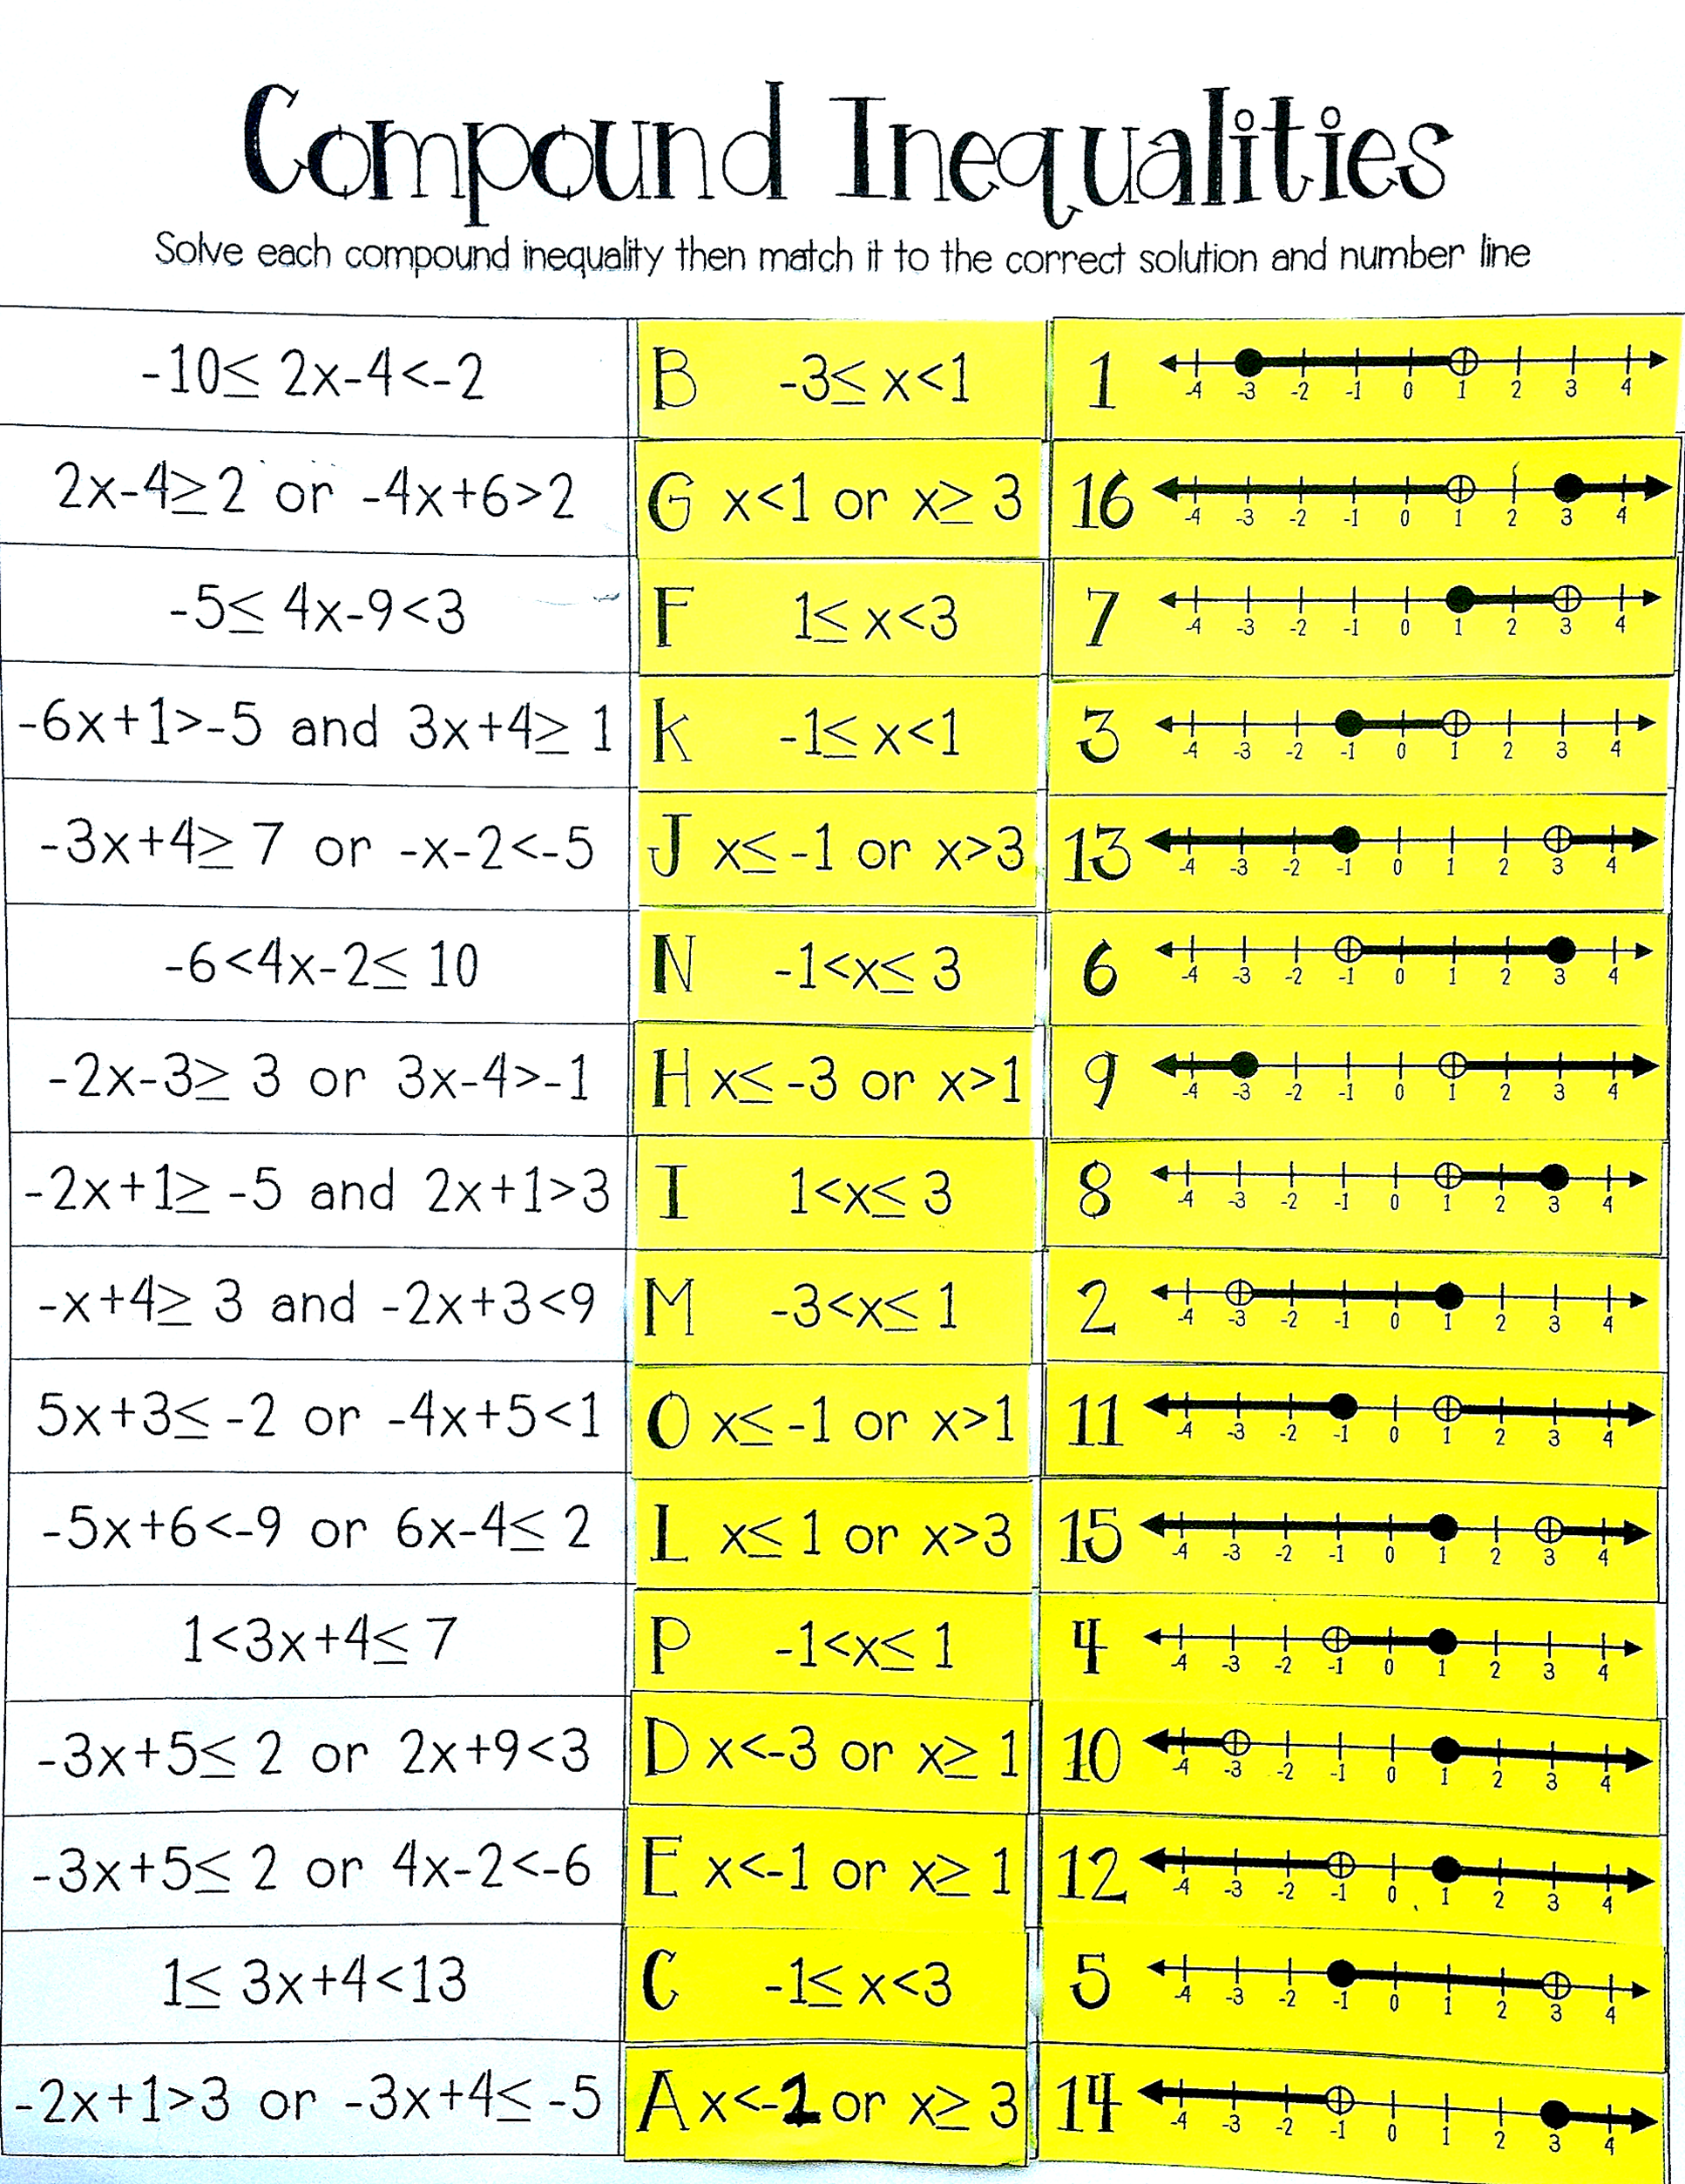 Compound Inequalities Card Match Activity Algebra 1 Worksheets